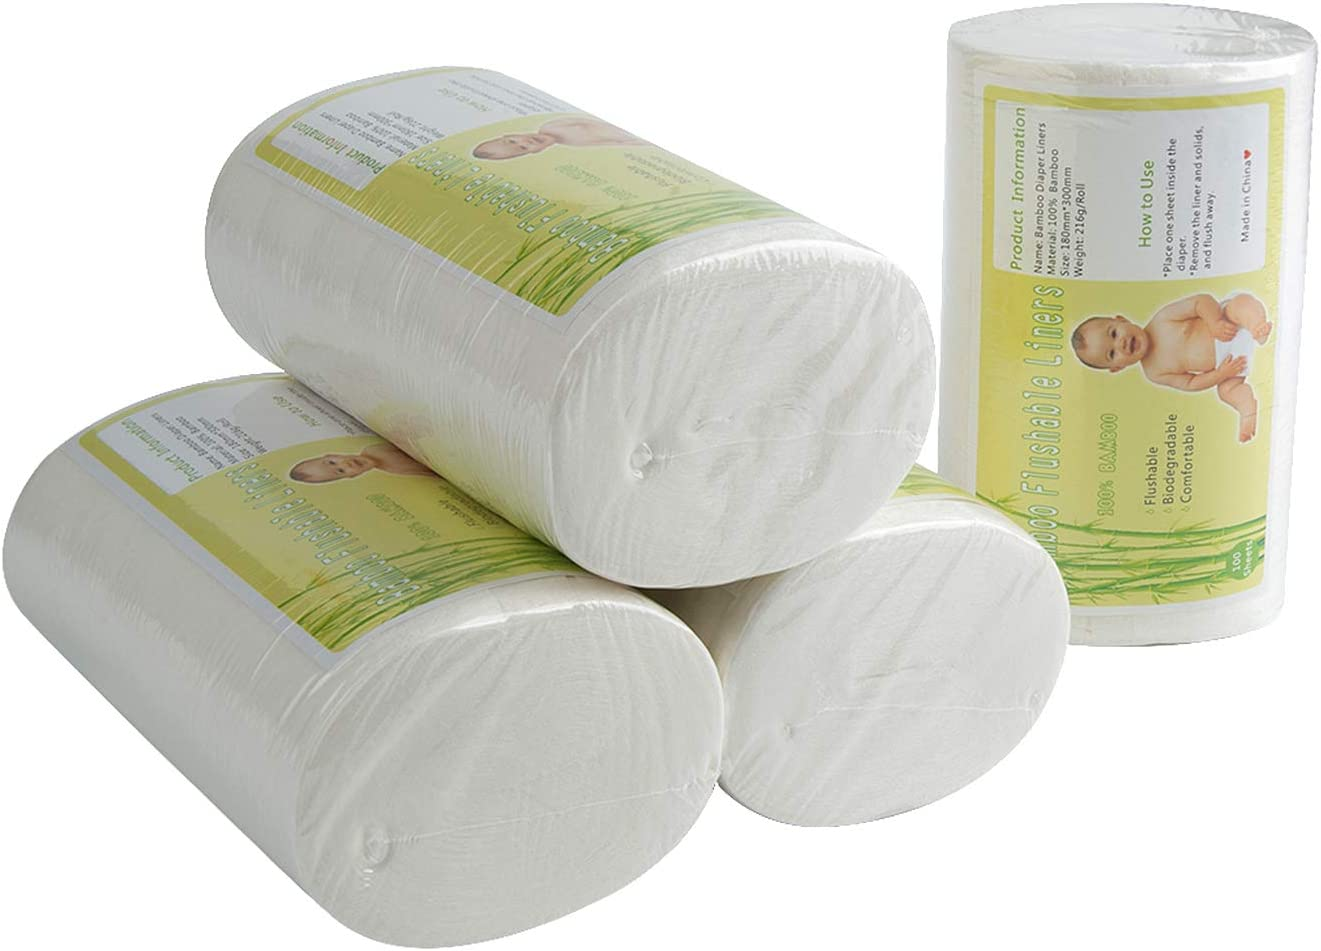 100 Pcs Flushable Liners Nappy Insert Cloth Biodegradable Comfortable Liner LH